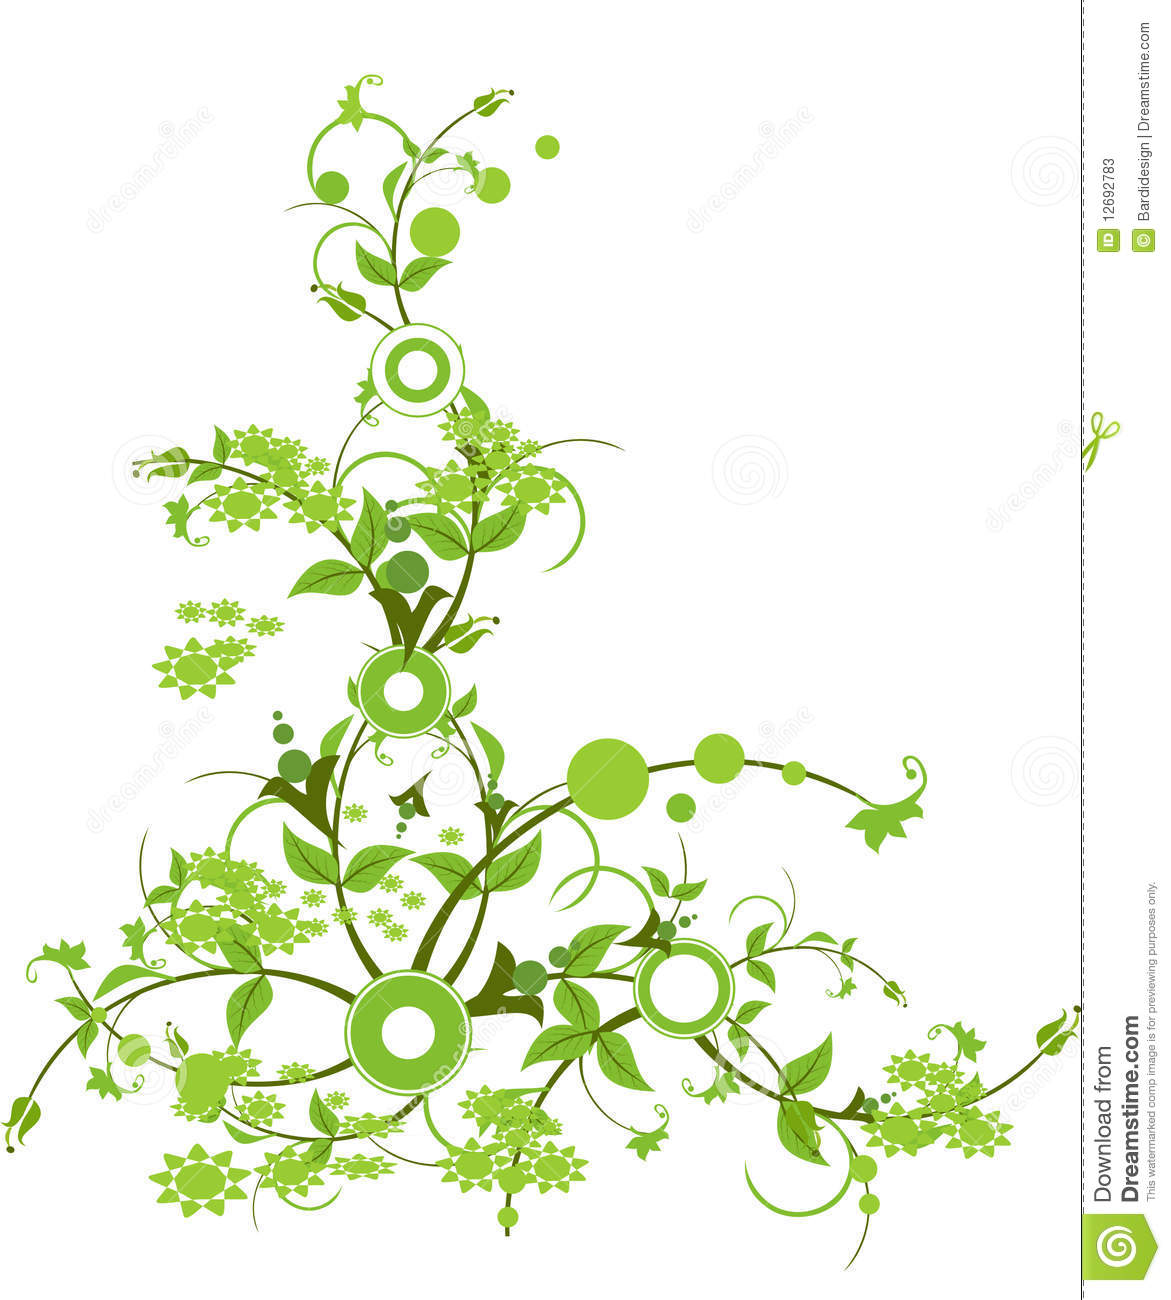 Flower with green color stock vector. Illustration of illustration ...